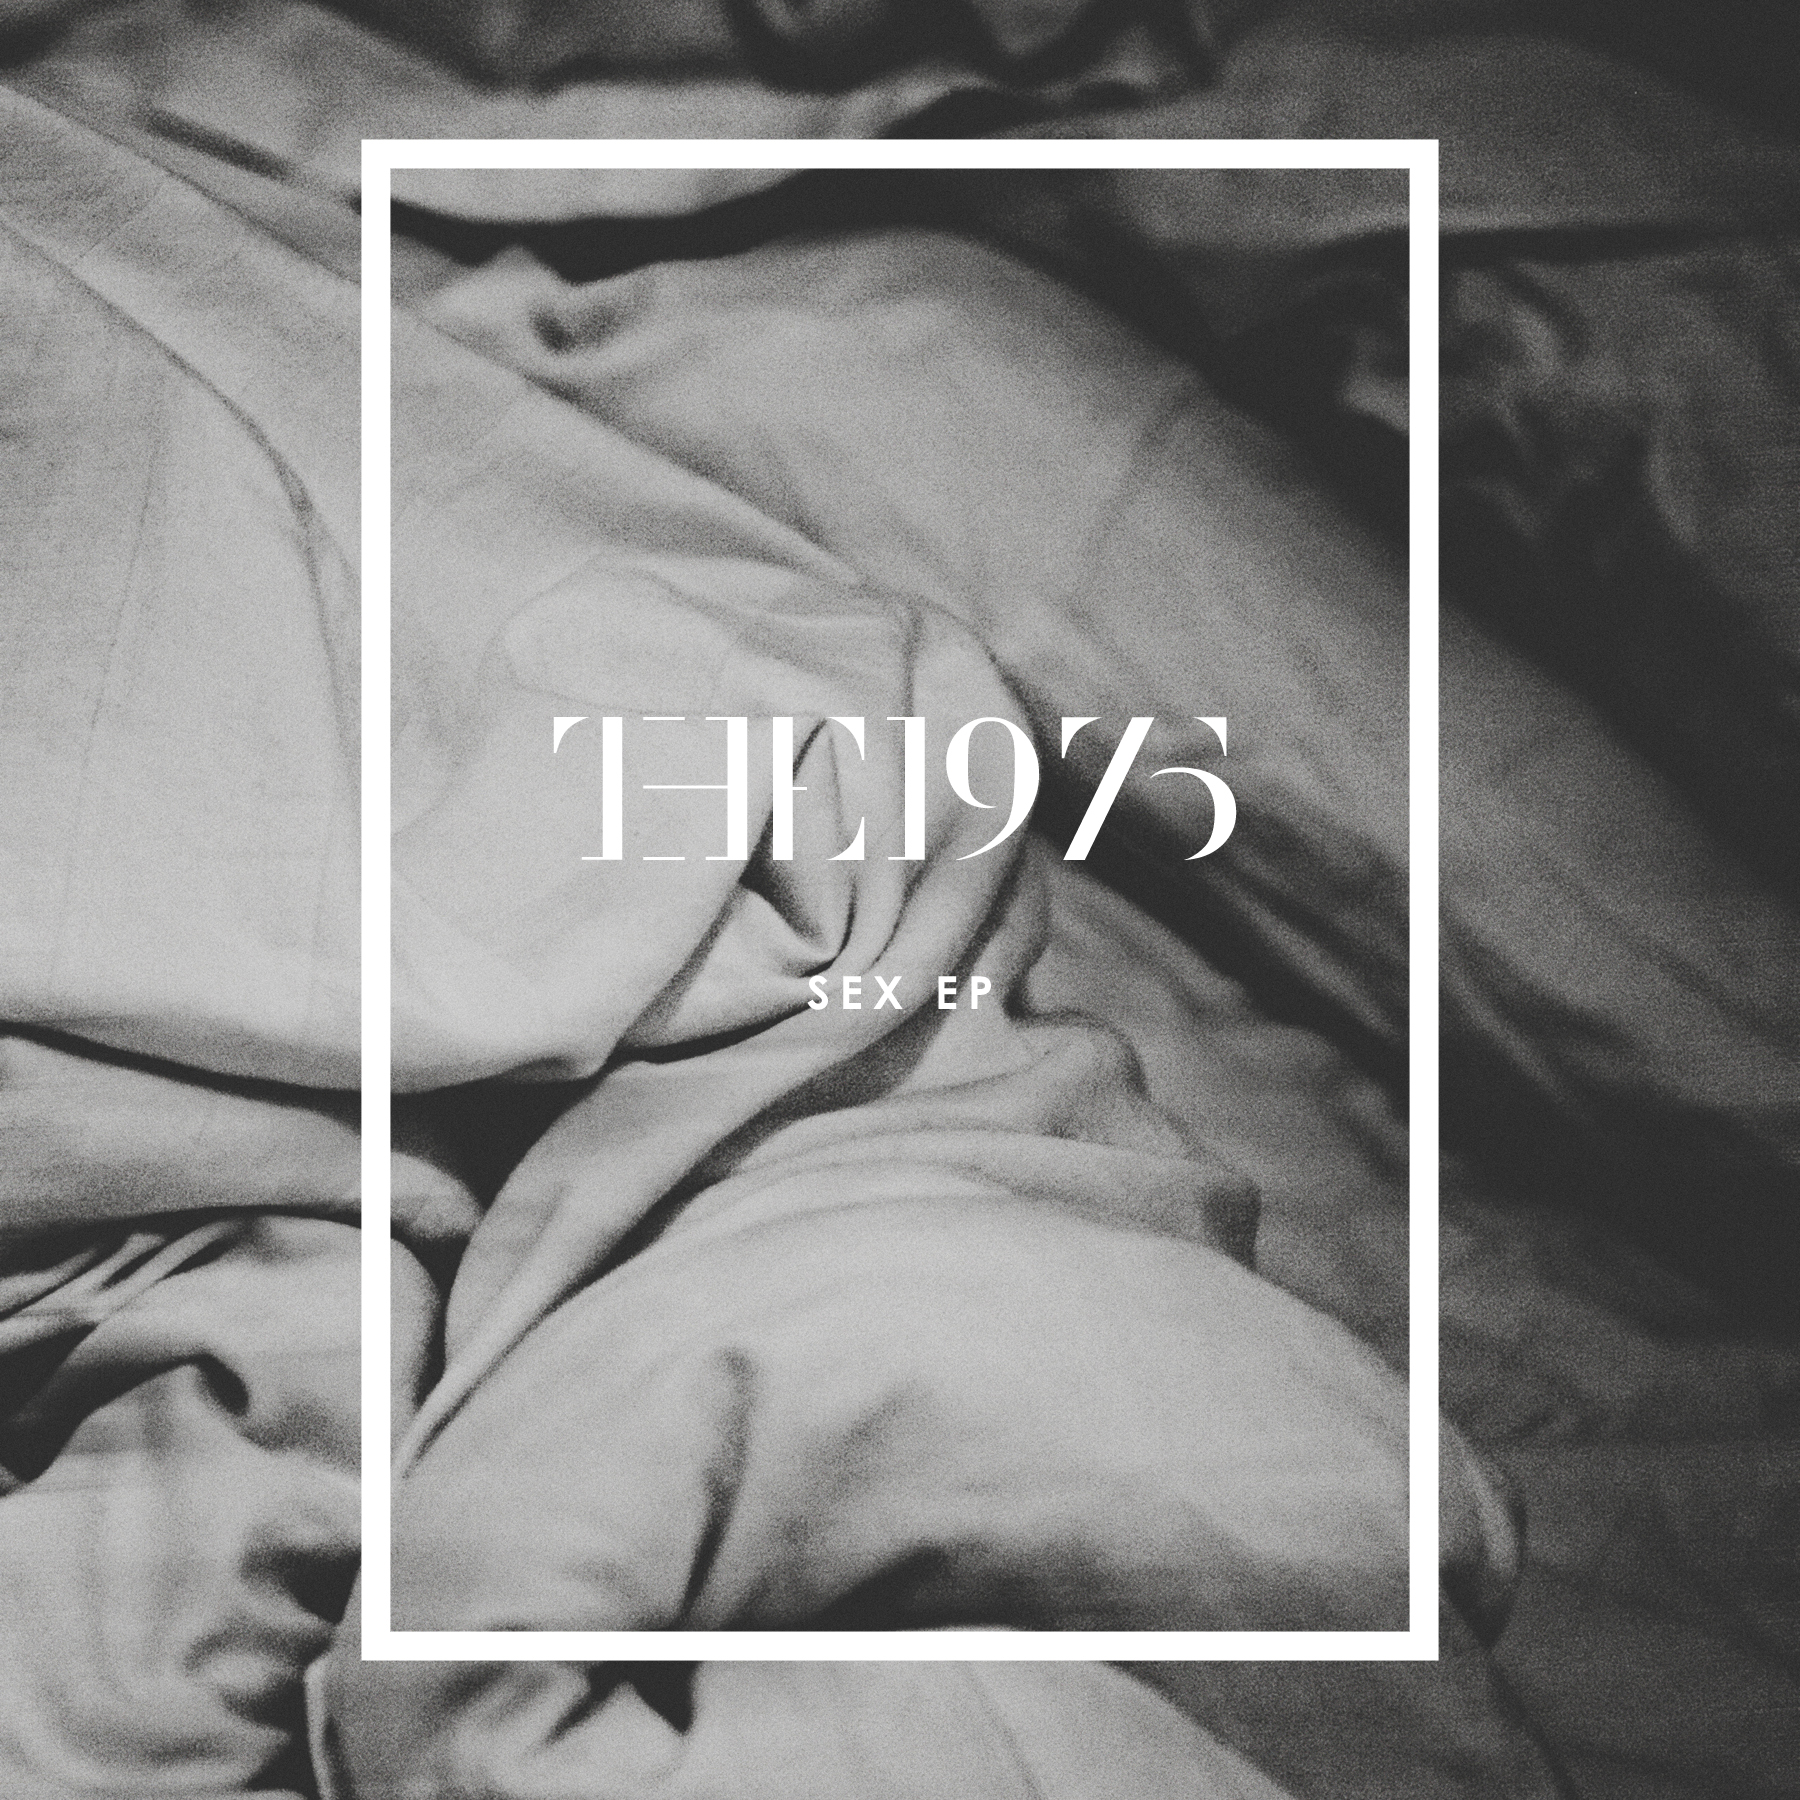 The 1975 sex music video pic 690